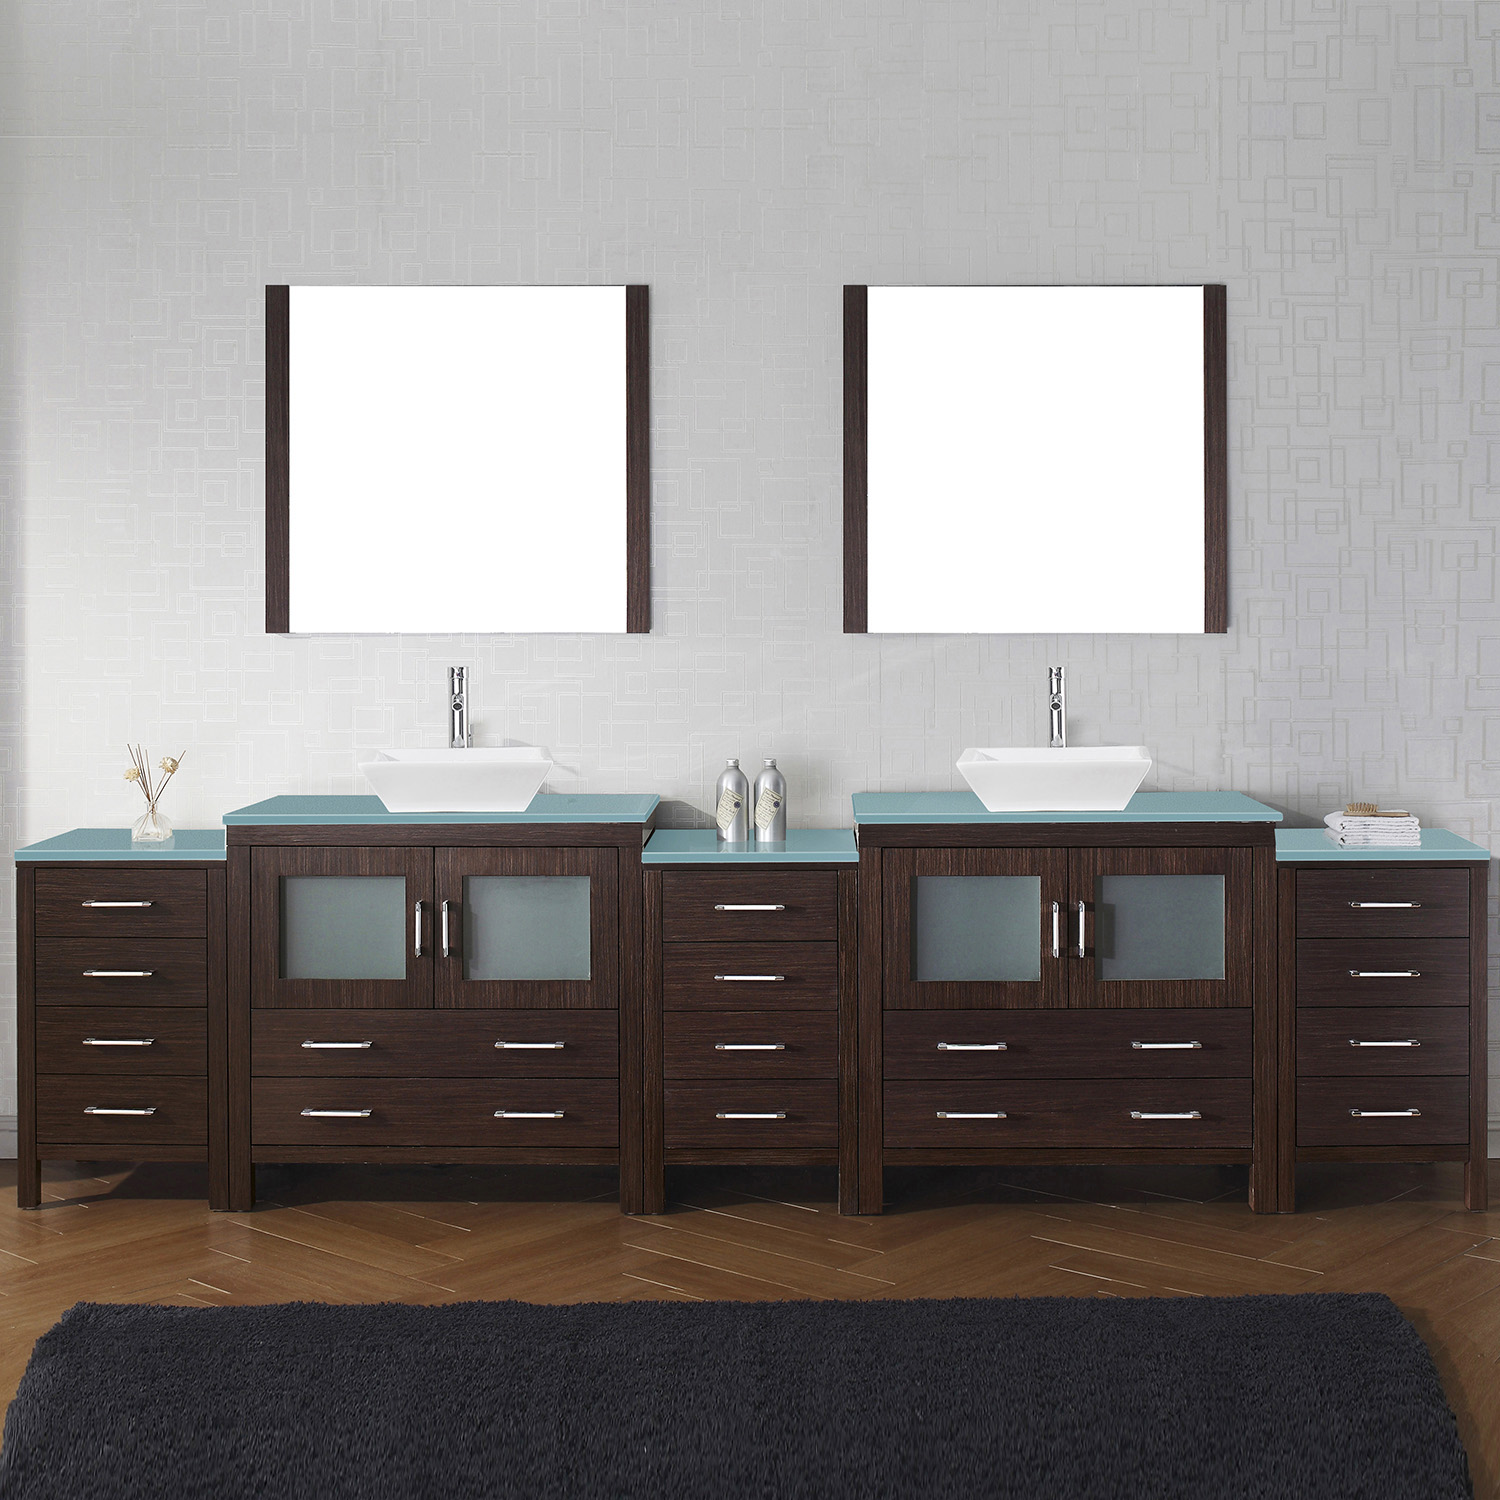 "126"" Double Bath Vanity in Espresso with Aqua Tempered Glass Top and Square Sink with Polished Chrome Faucet and Mirrors"